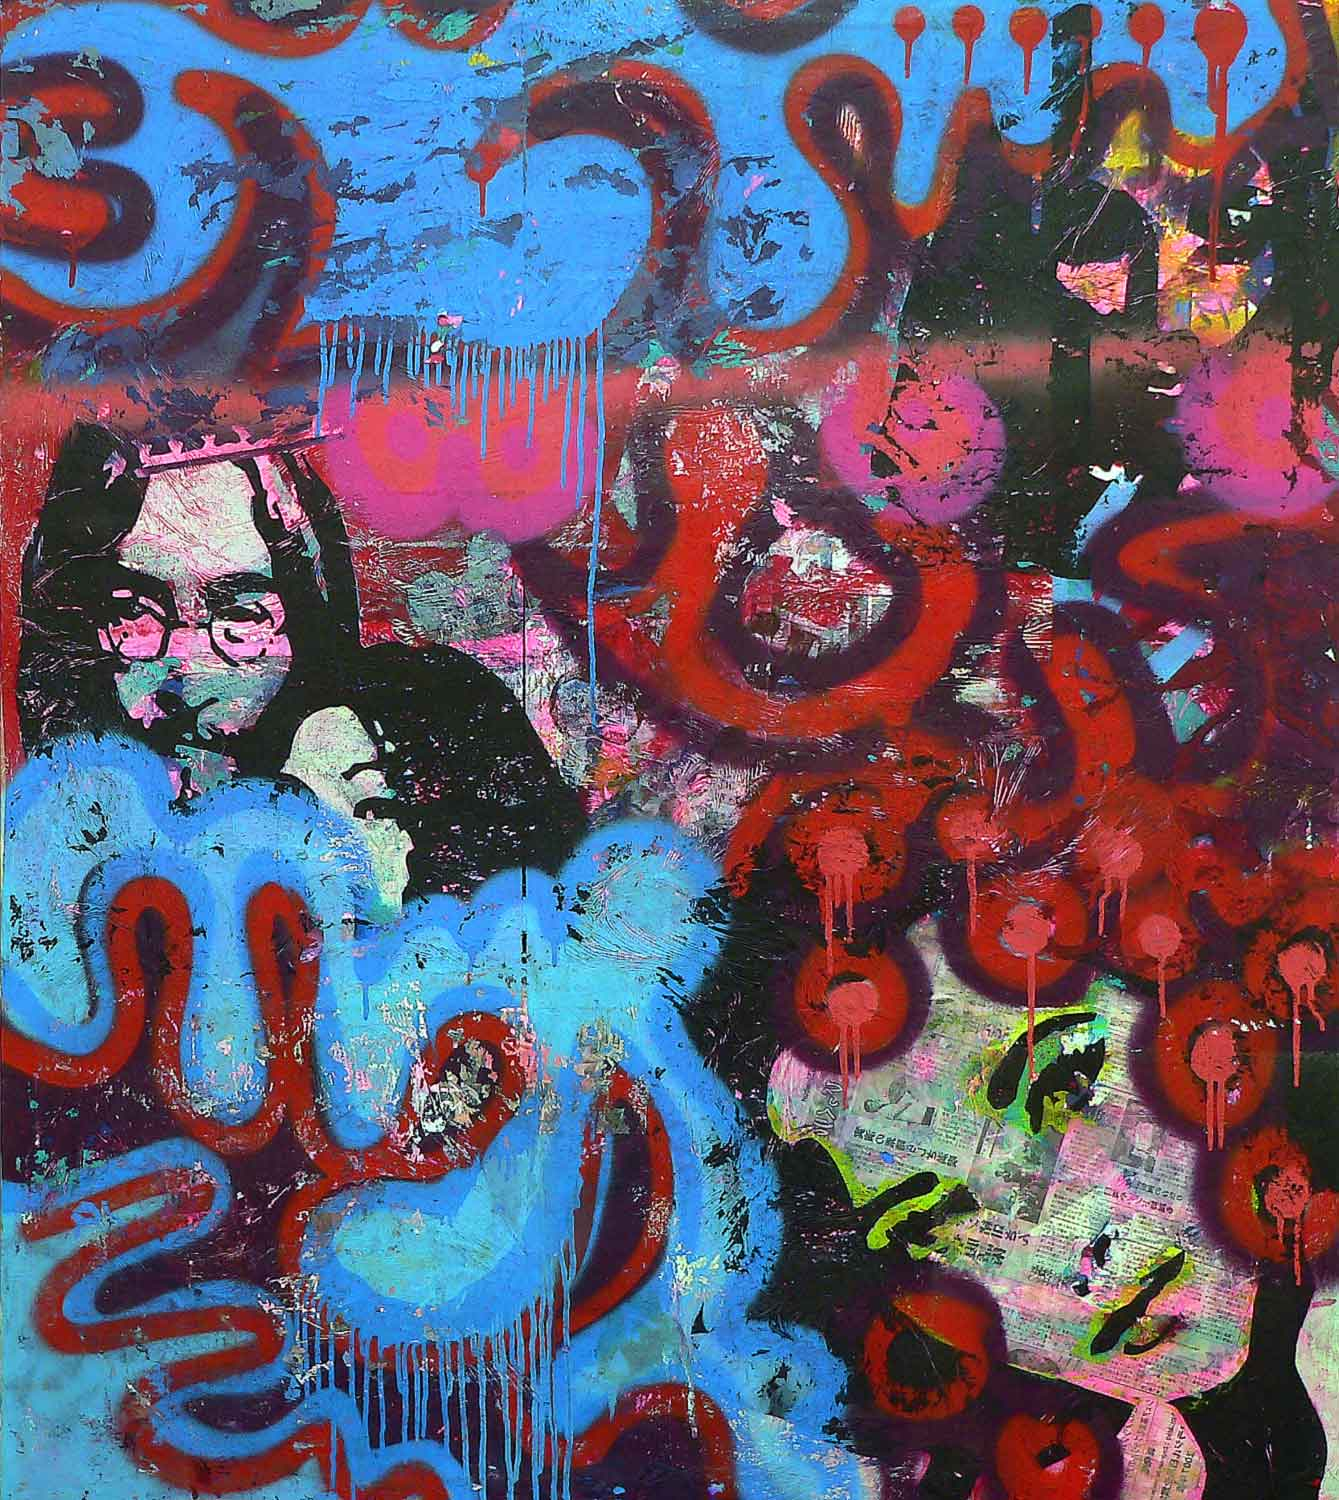 lennon - 130 x 115 cm - acrylic, spray paint, markers and collage on canvas - 2010